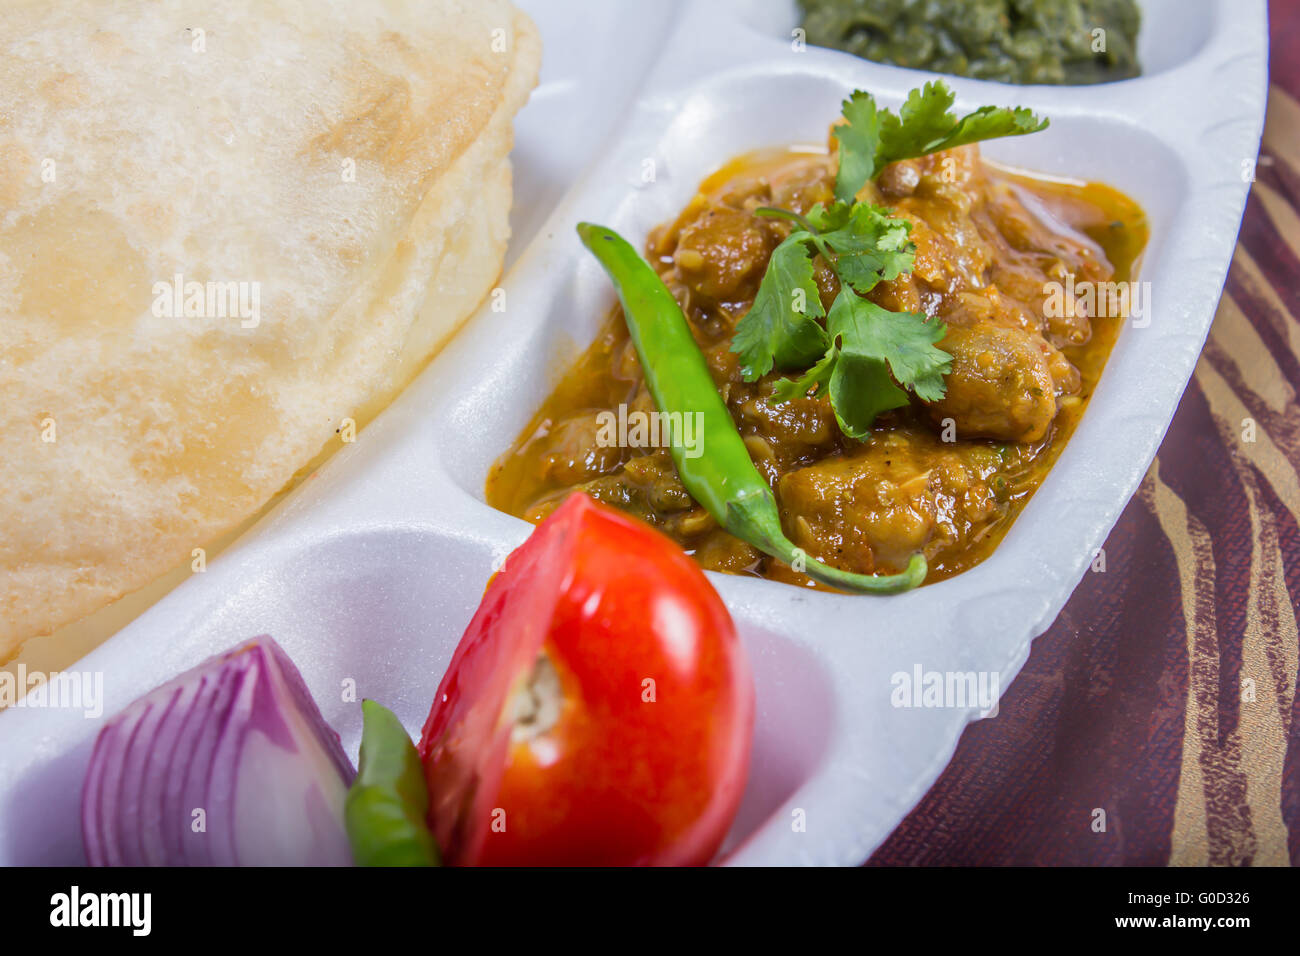 chole bhature with salad and chutney - Stock Image